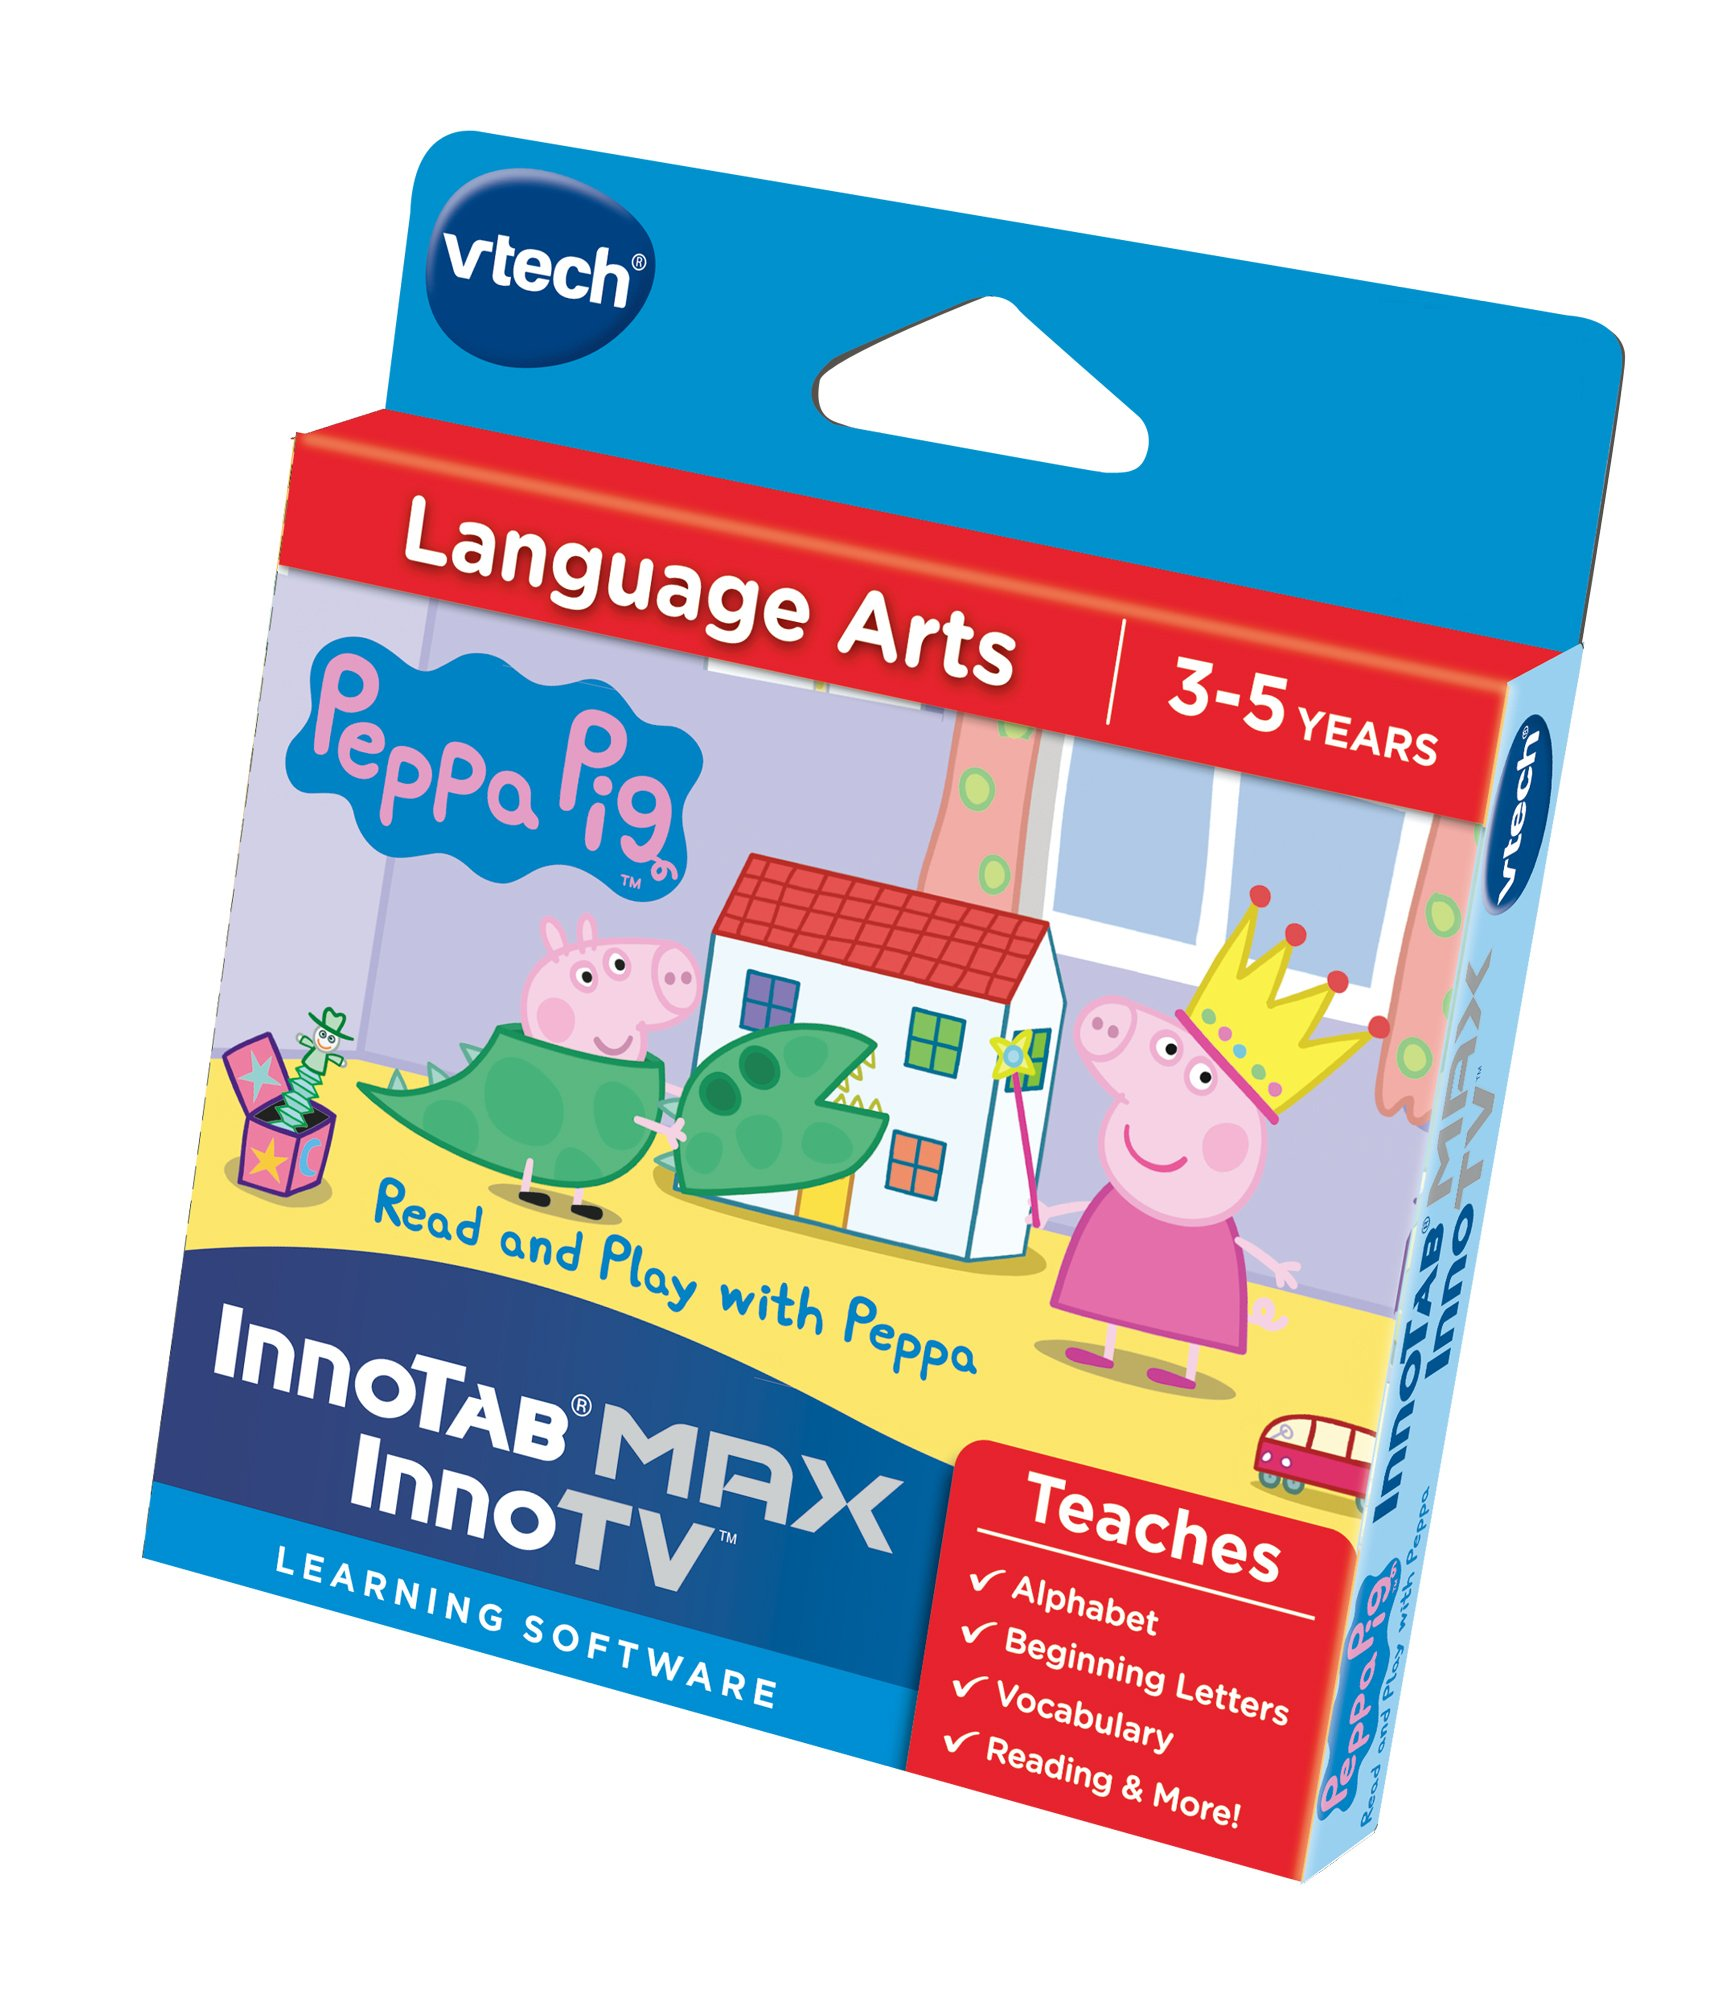 VTech 273403 InnoTV Innotab Max Peppa Pig Read and Play with Peppa Game - Multi-Coloured